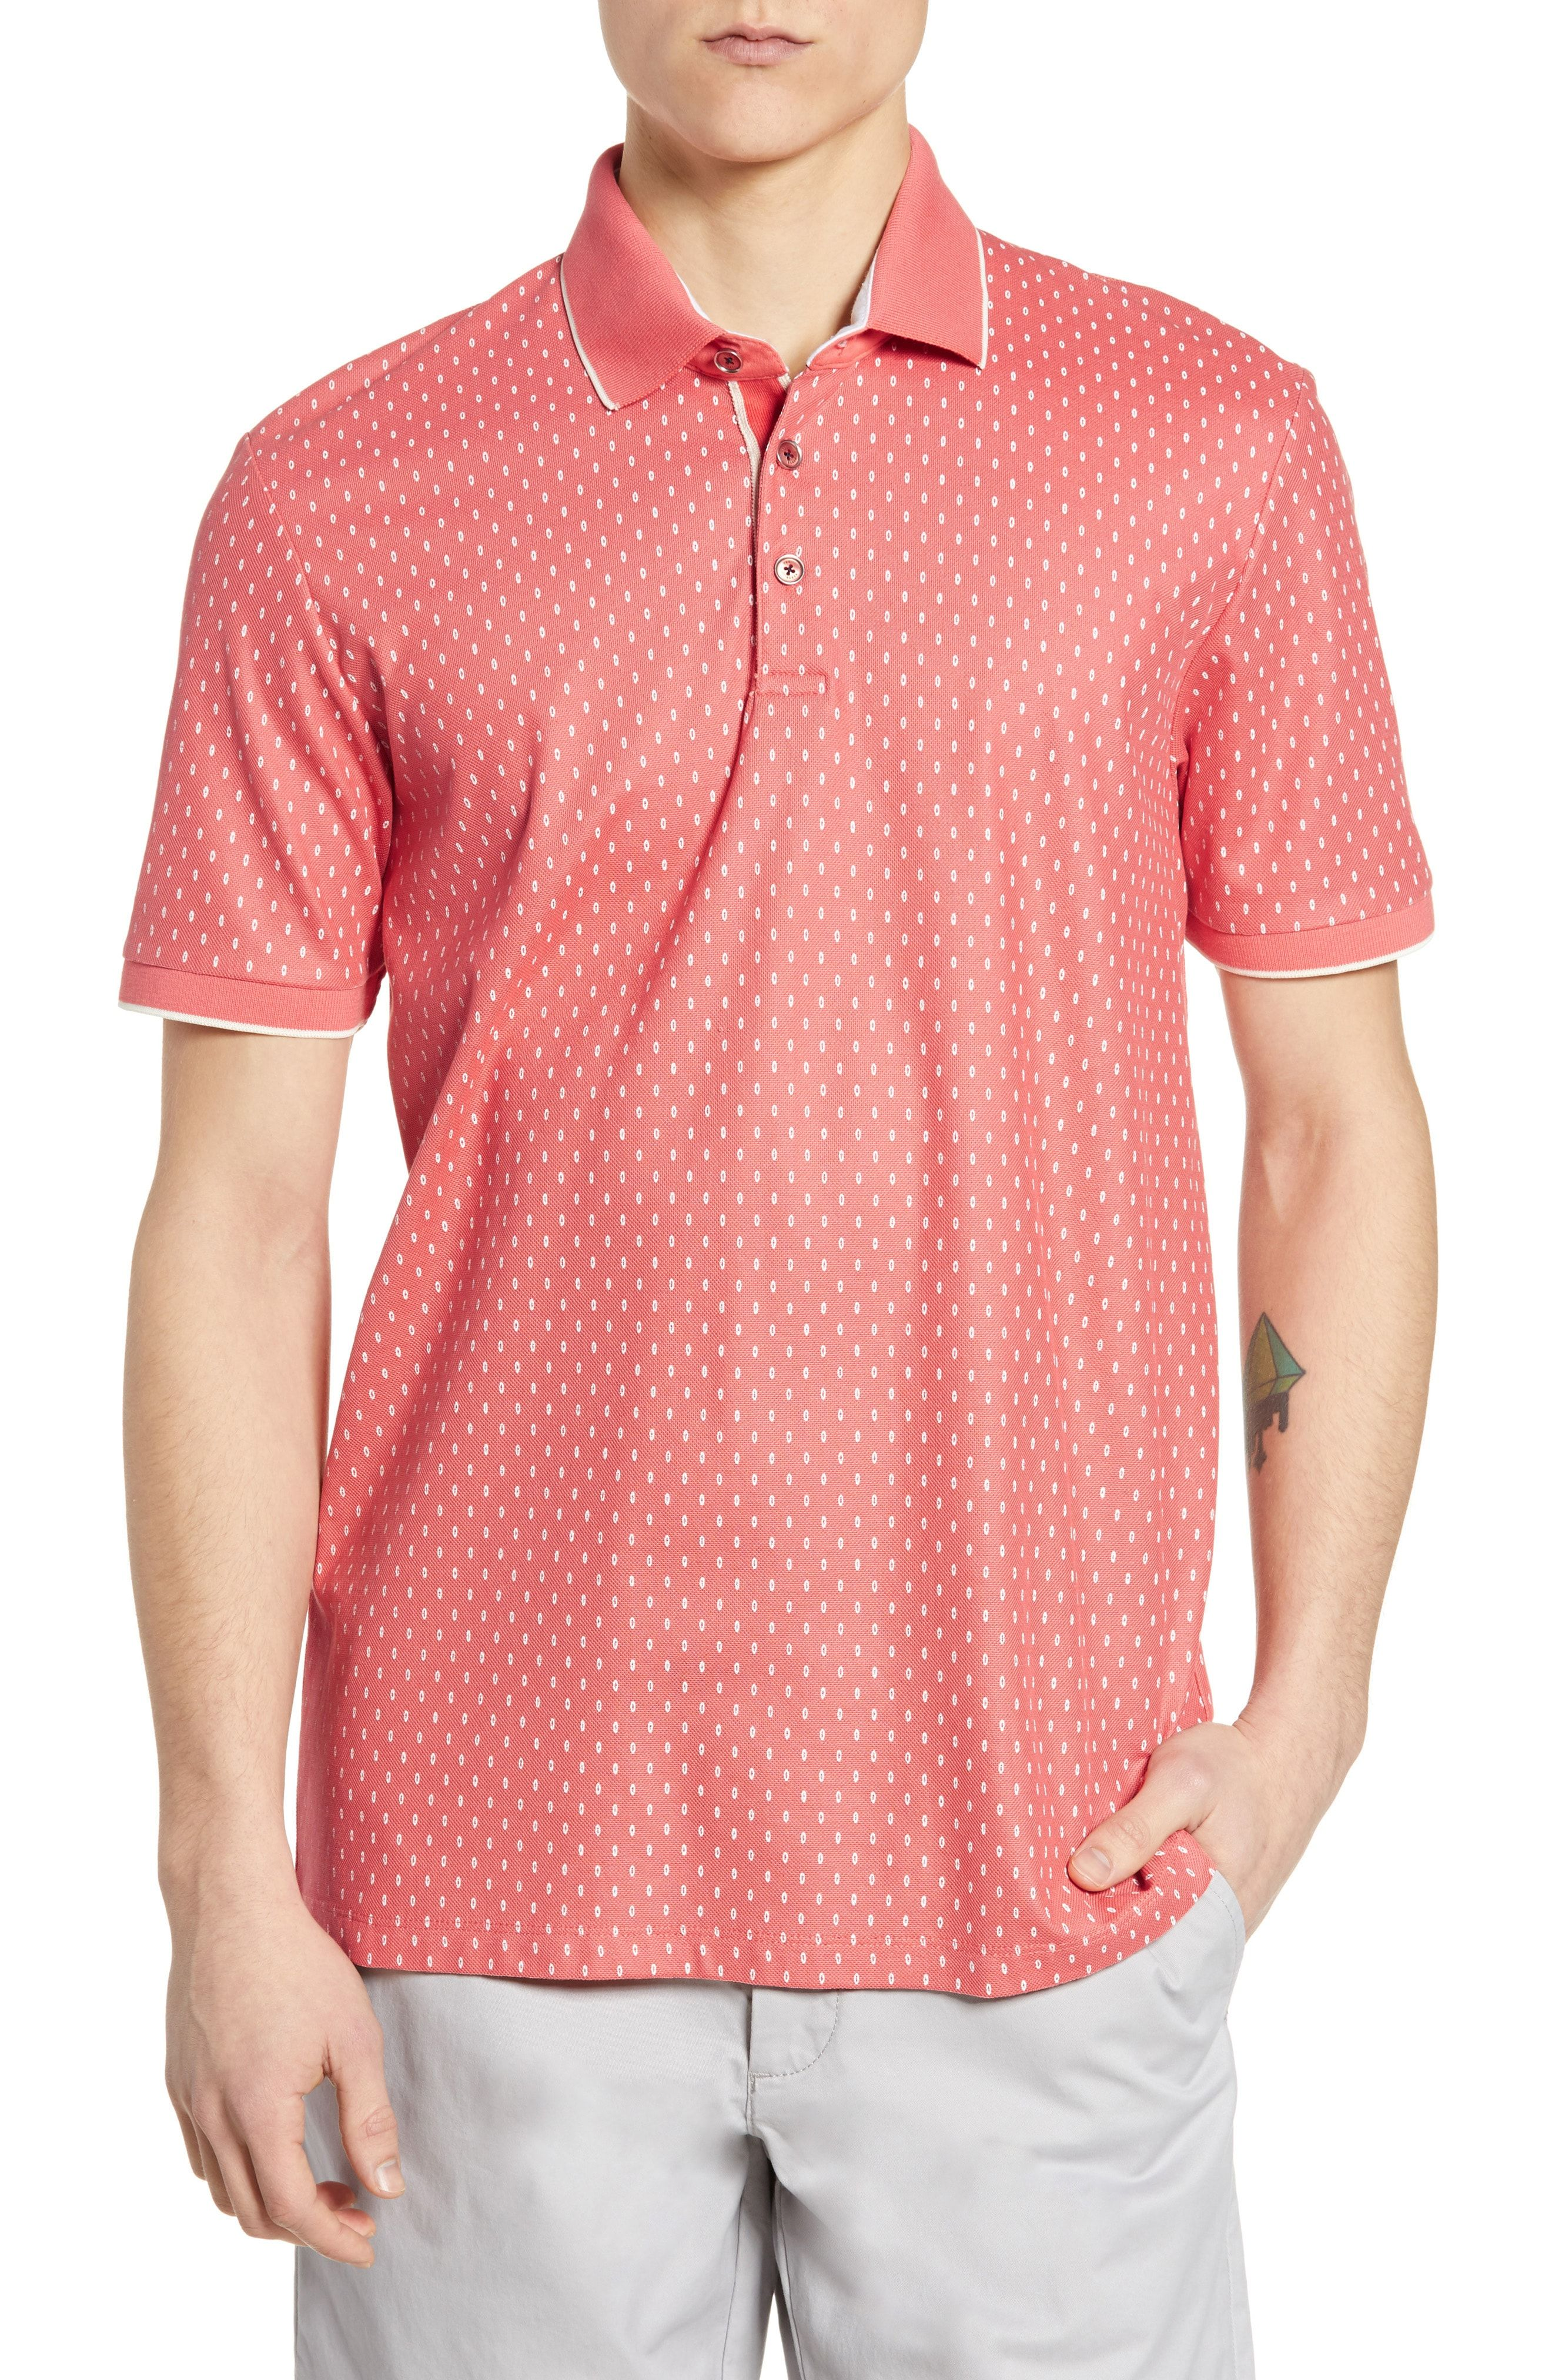 5c1f839e3 TED BAKER TOFF SLIM FIT PRINT PIQUE POLO.  tedbaker  cloth